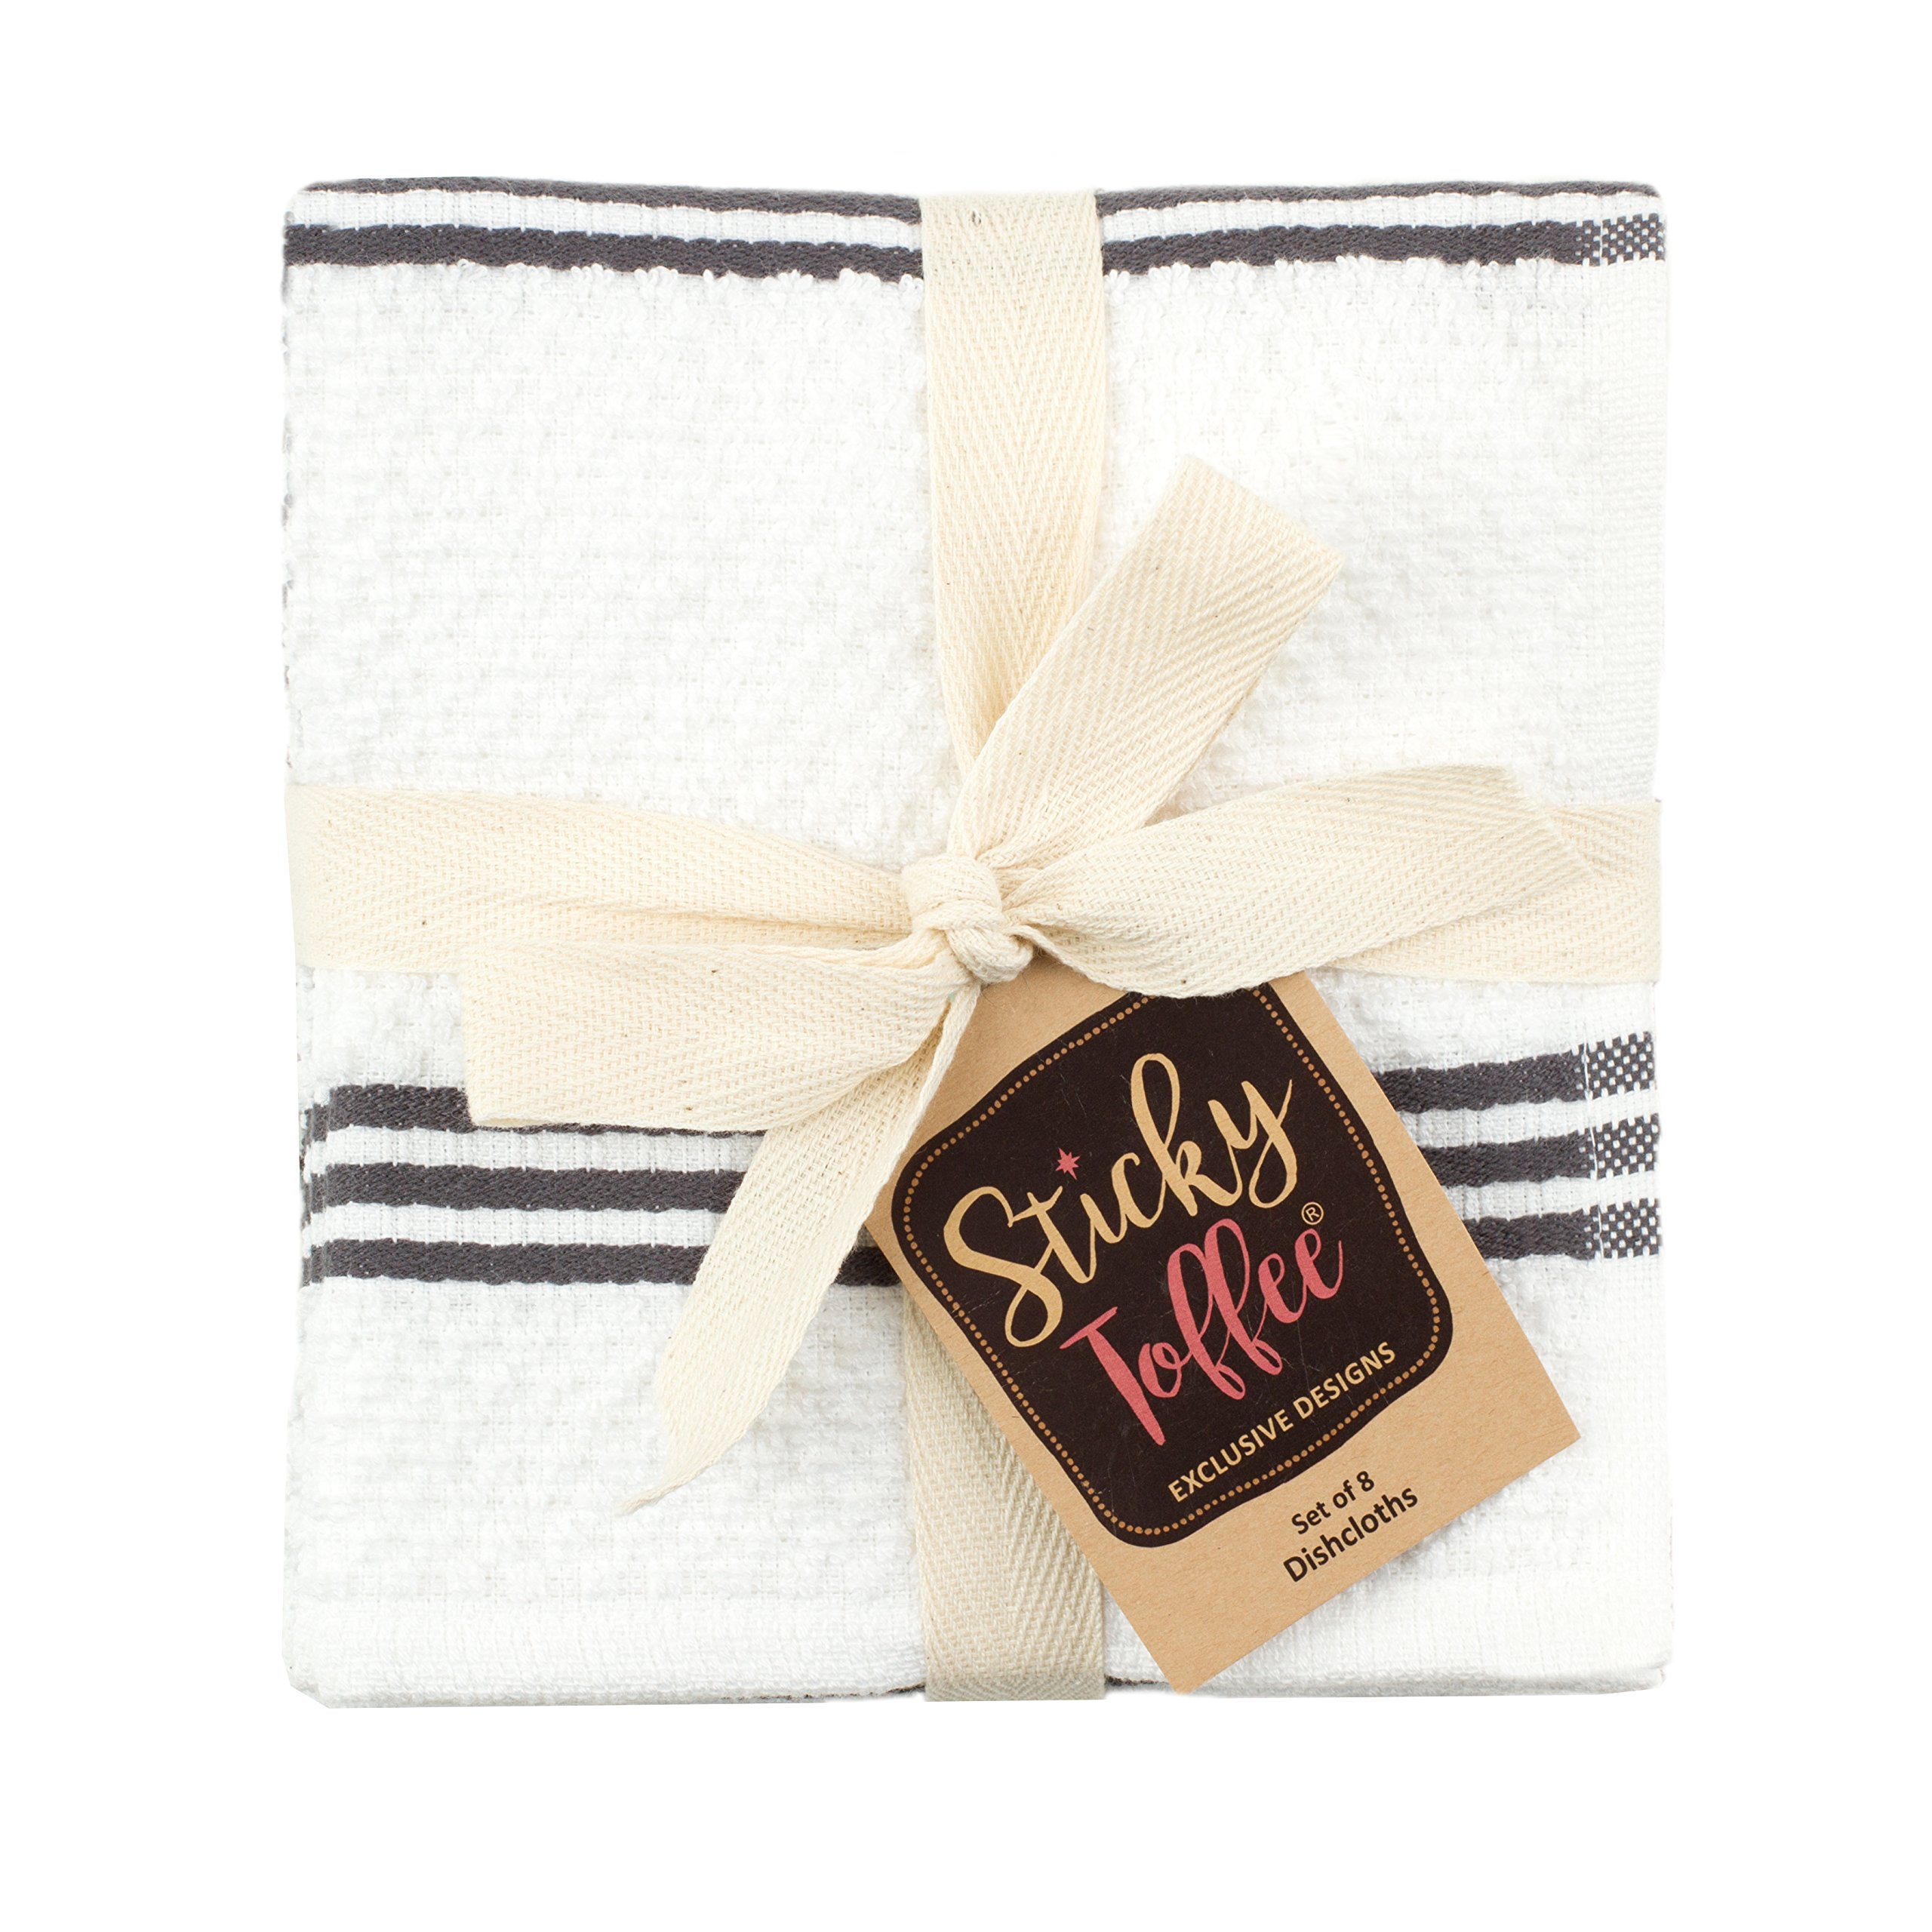 Sticky Toffee Cotton Terry Kitchen Dishcloth, Gray, 8 Pack, 12 in x 12 in by Sticky Toffee (Image #5)